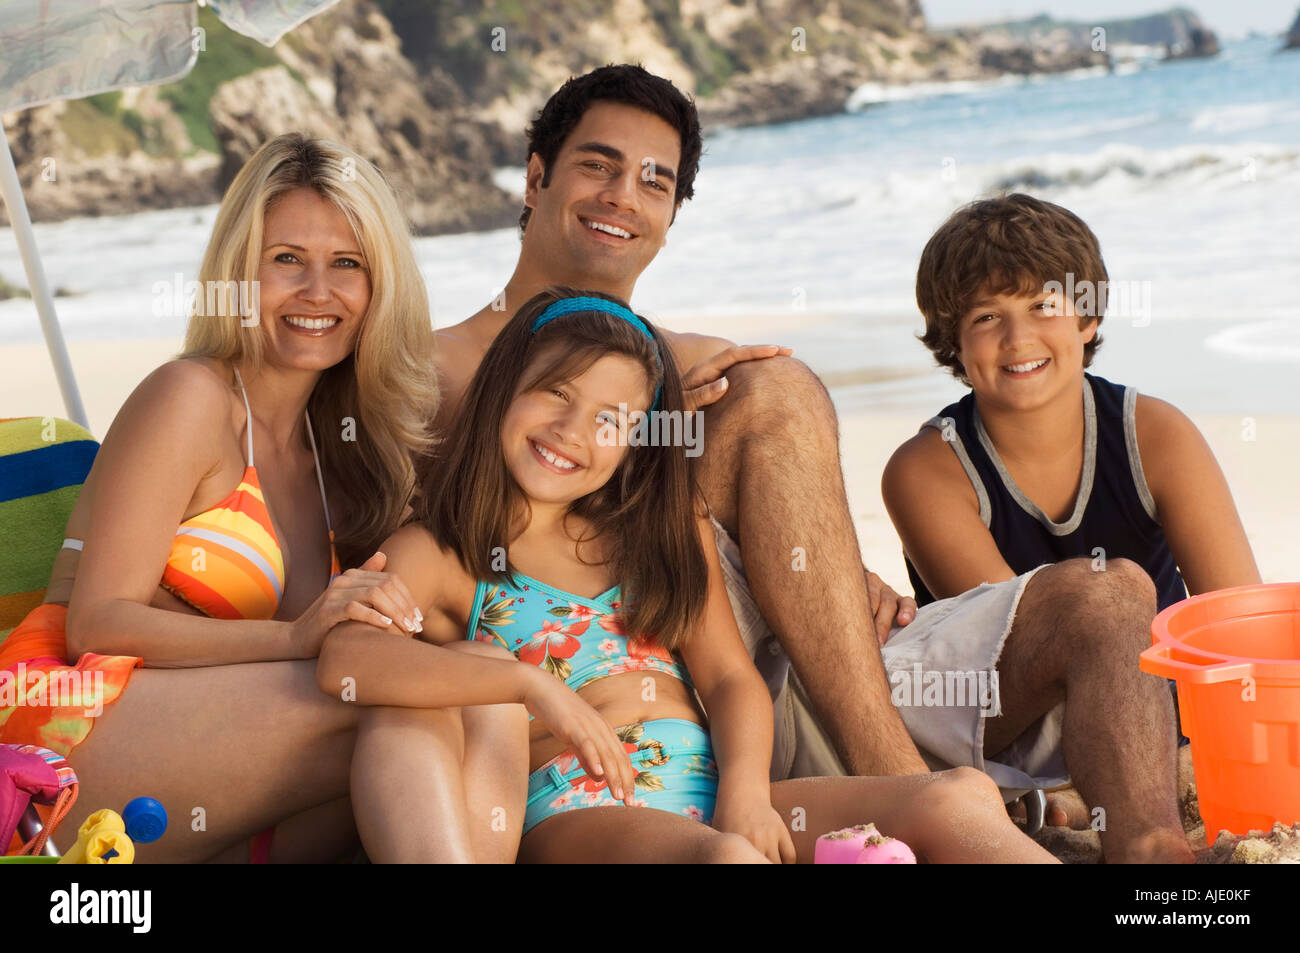 Family in swimwear sitting on beach, portrait - Stock Image